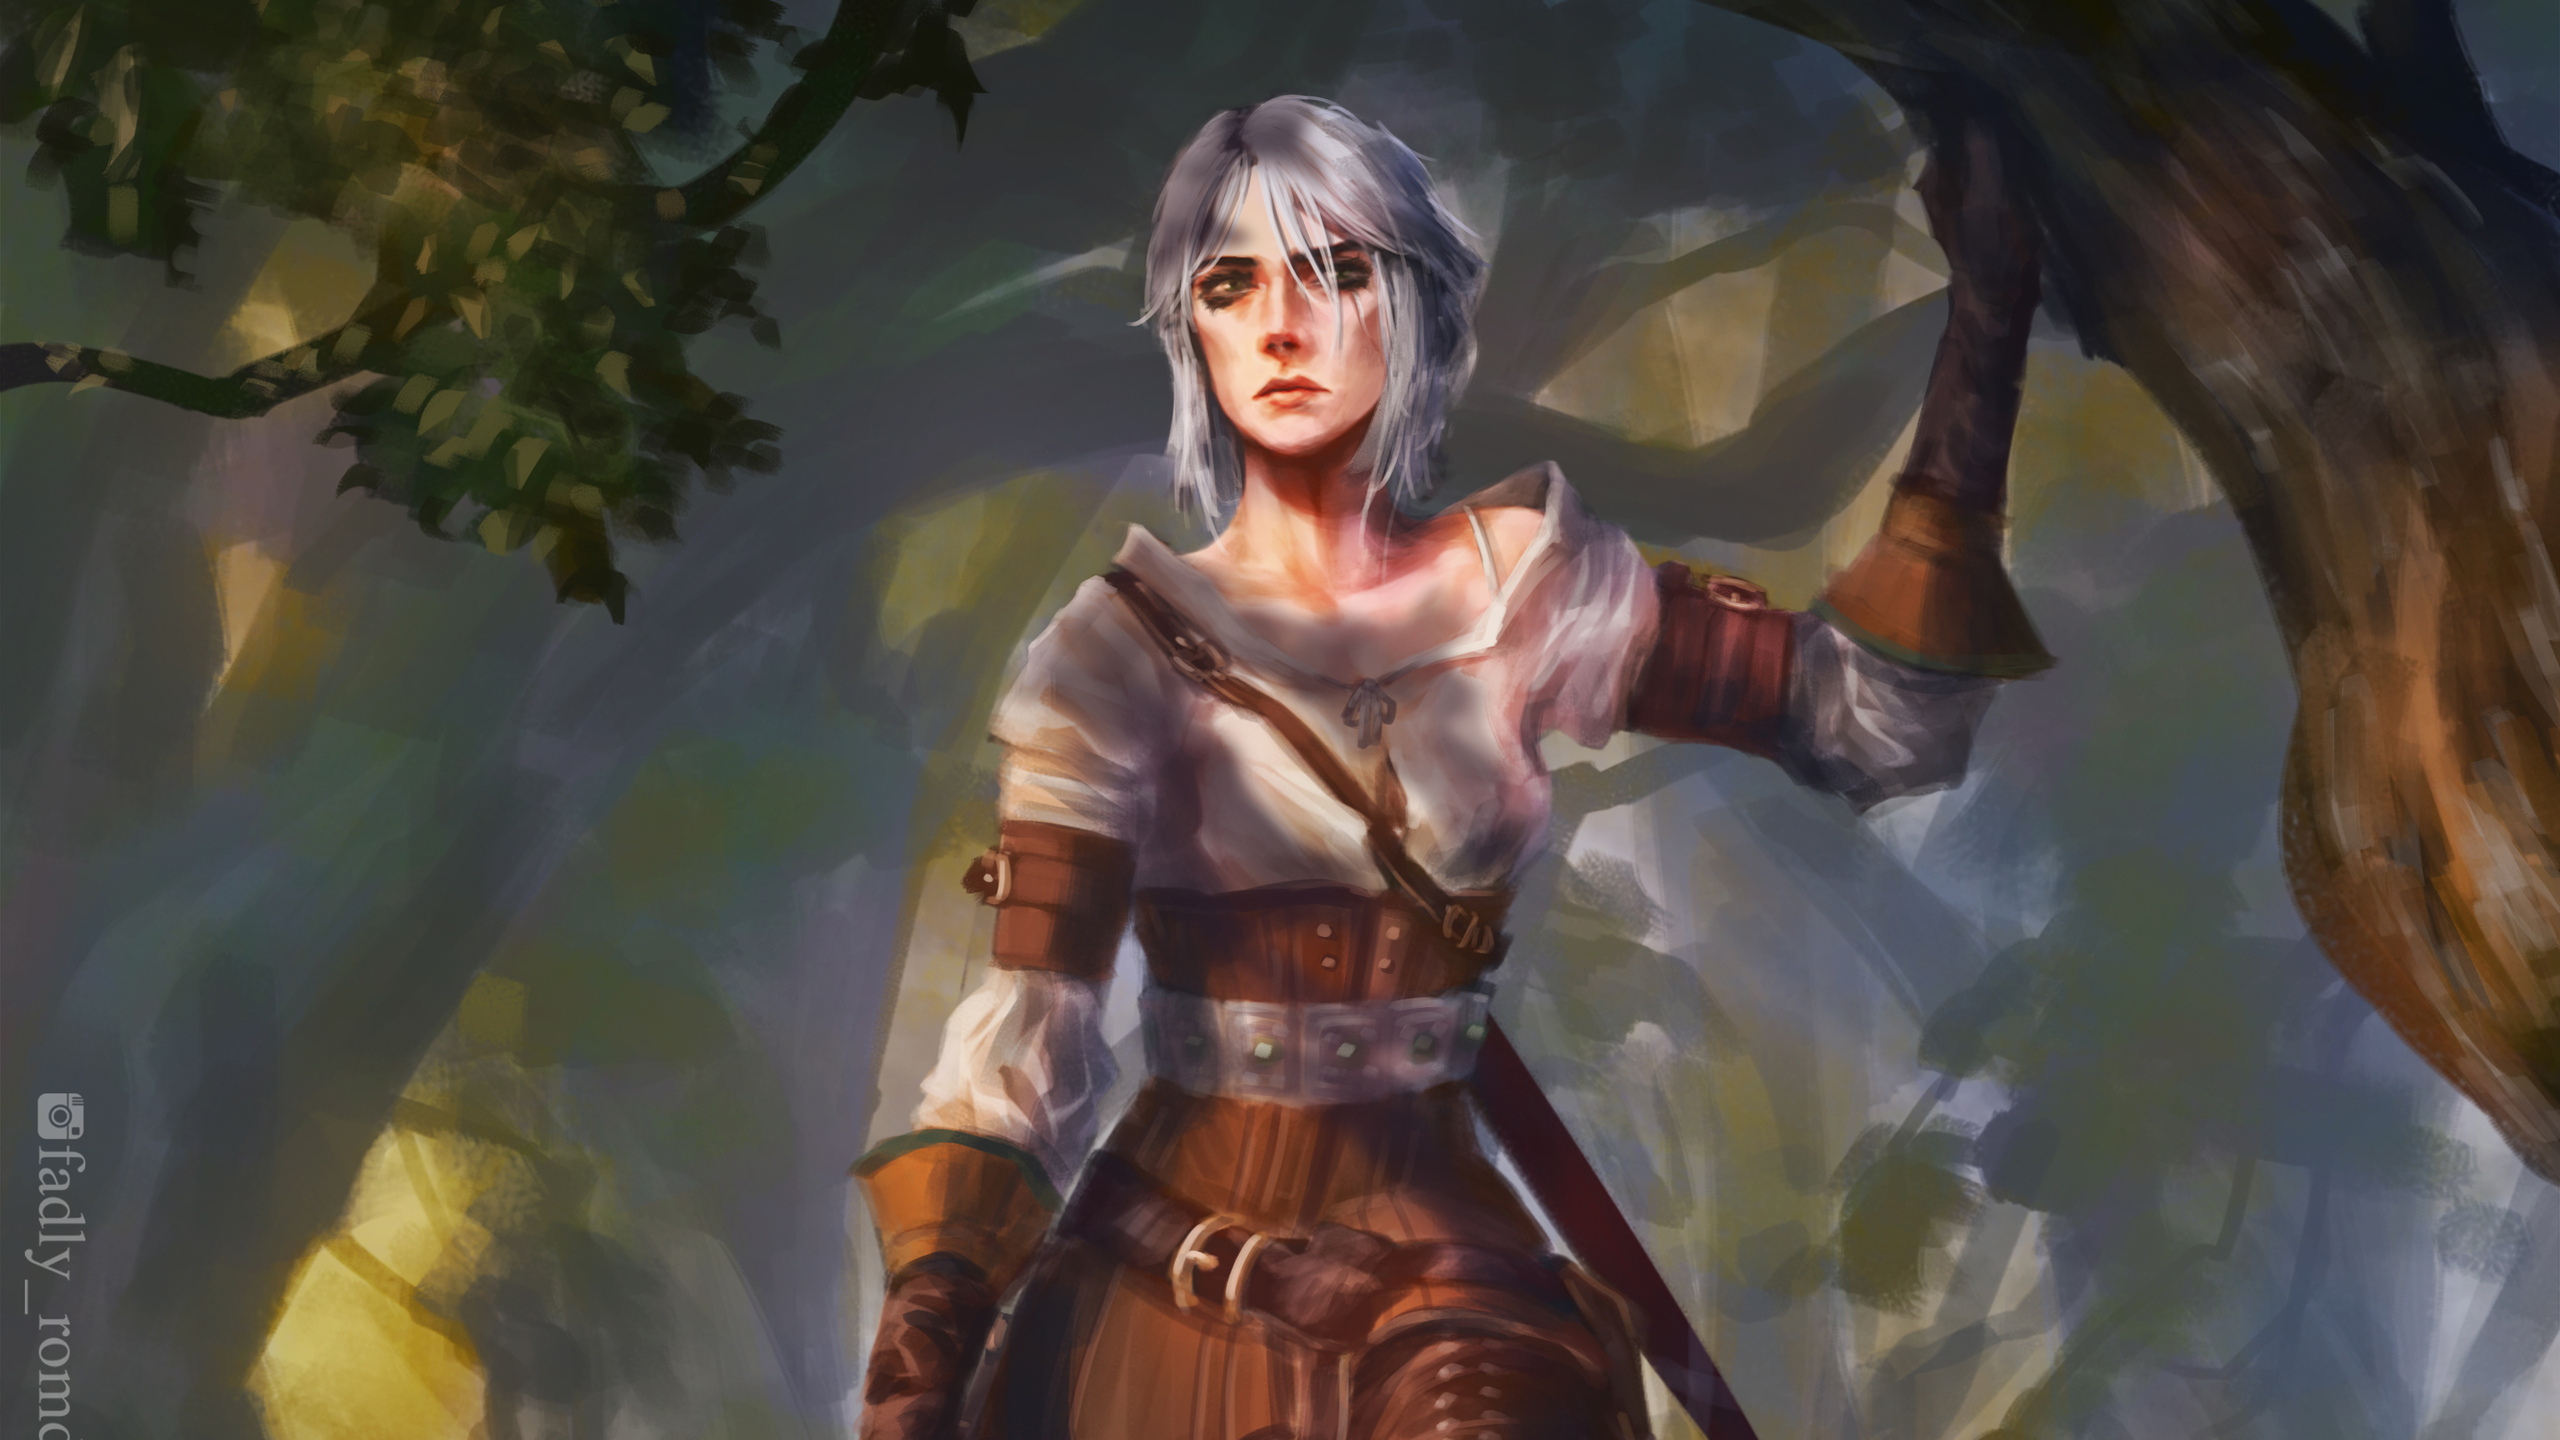 2560x1440 Ciri The Witcher 3 4k 1440p Resolution Hd 4k Wallpapers